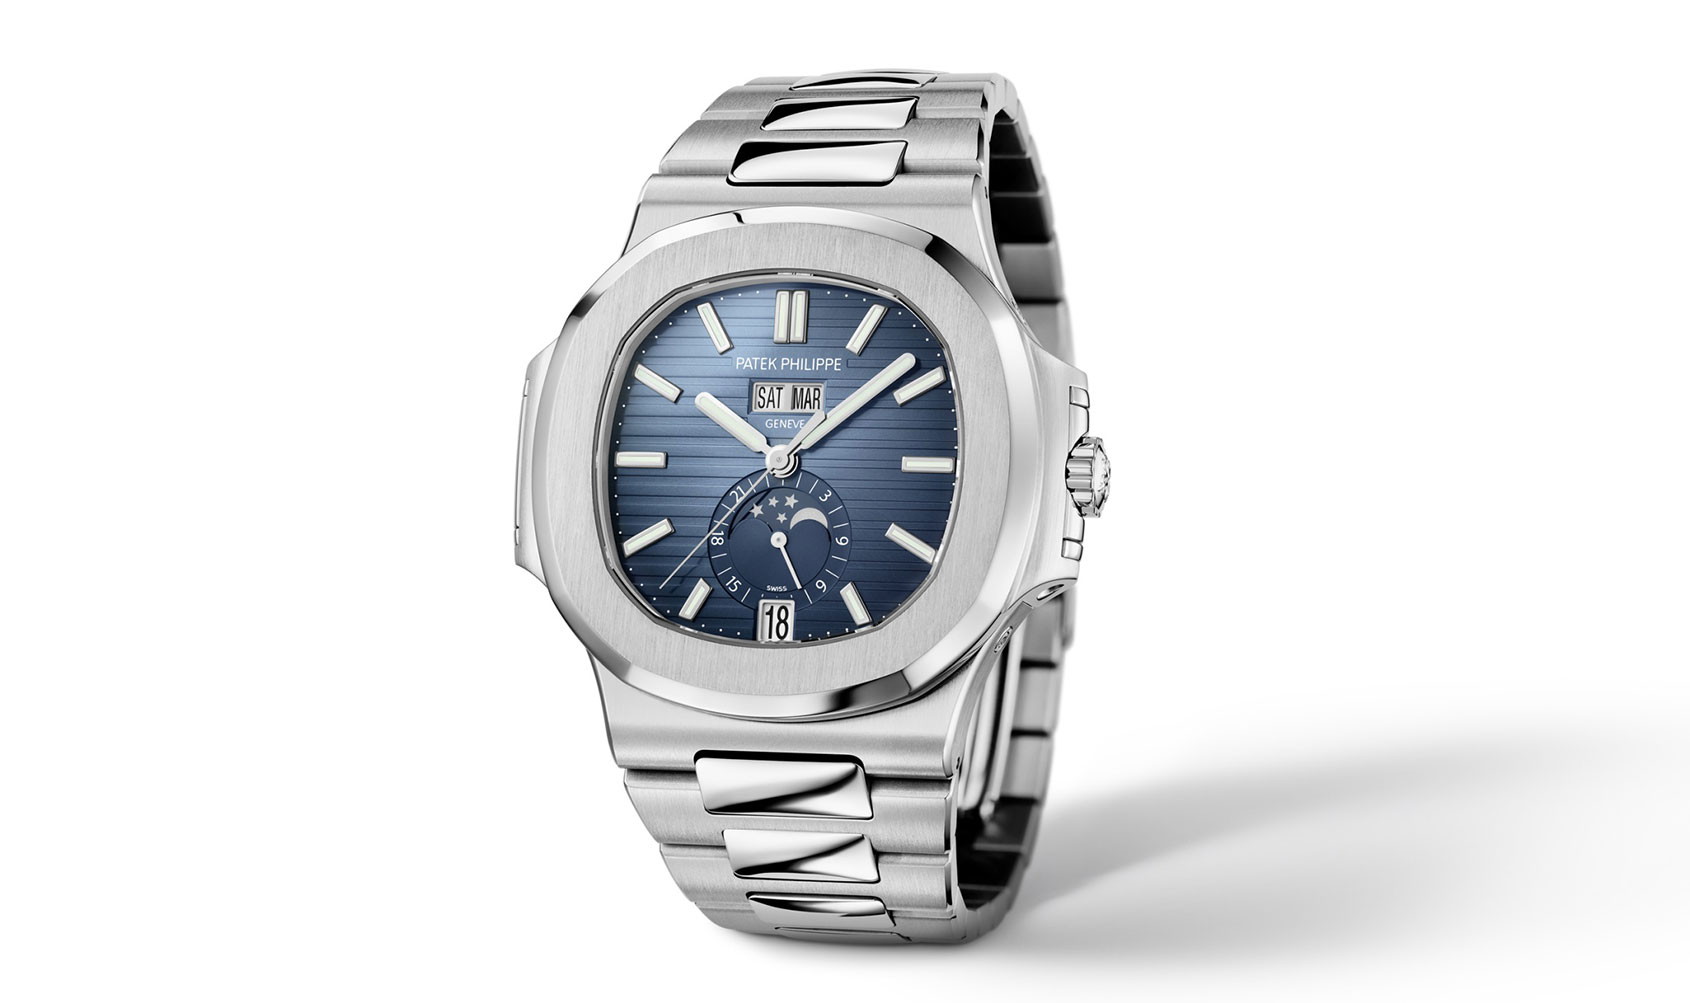 5 most unobtainable watches